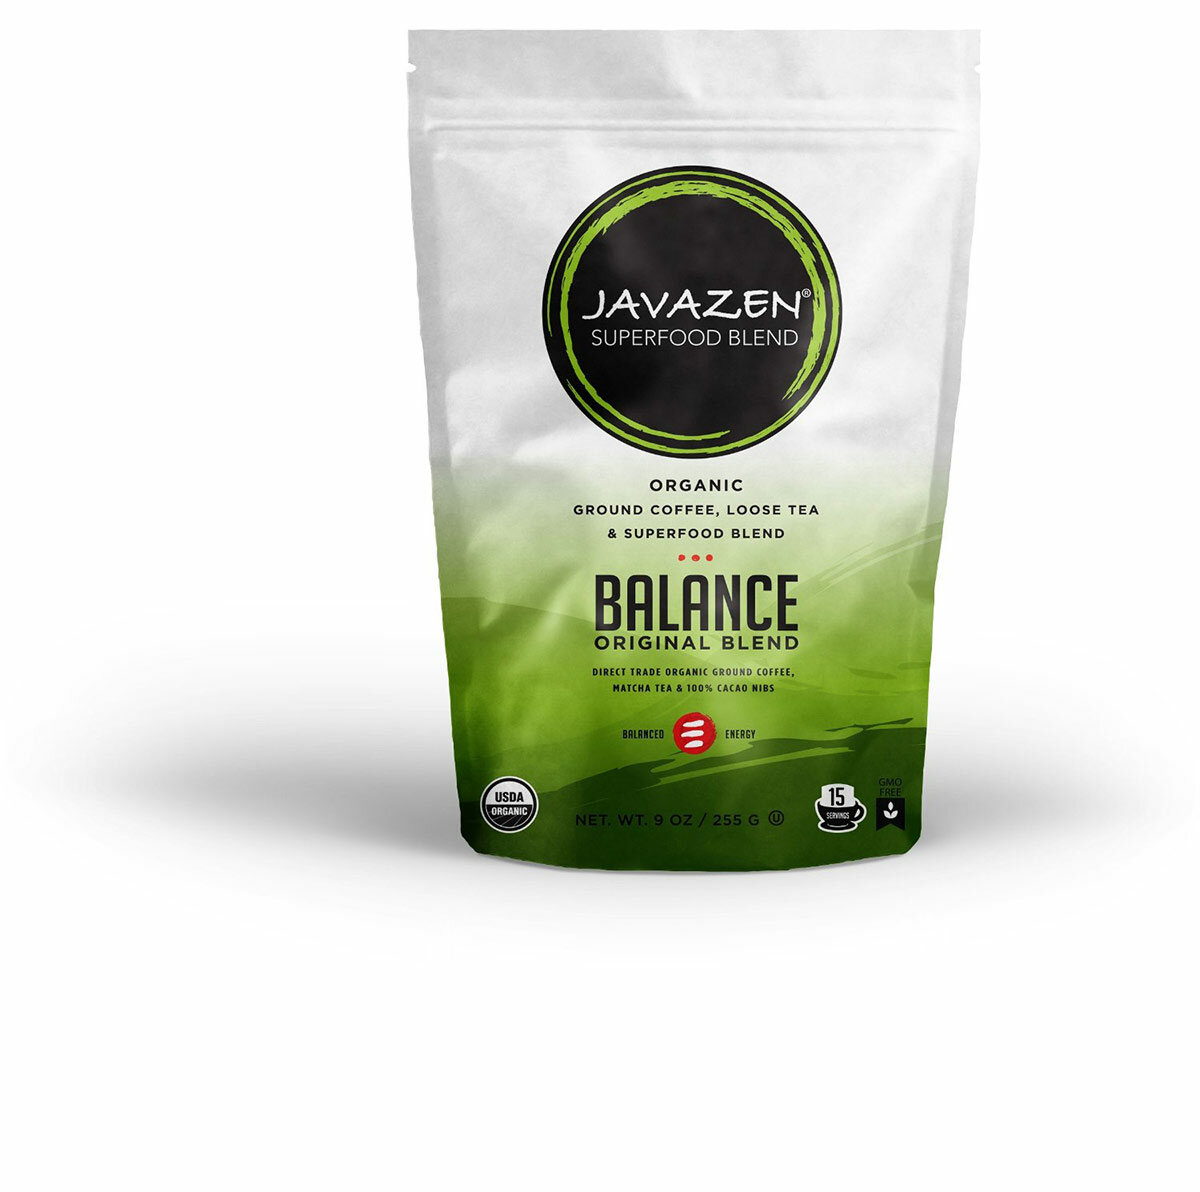 Energizing Superfood Blend by Javazen